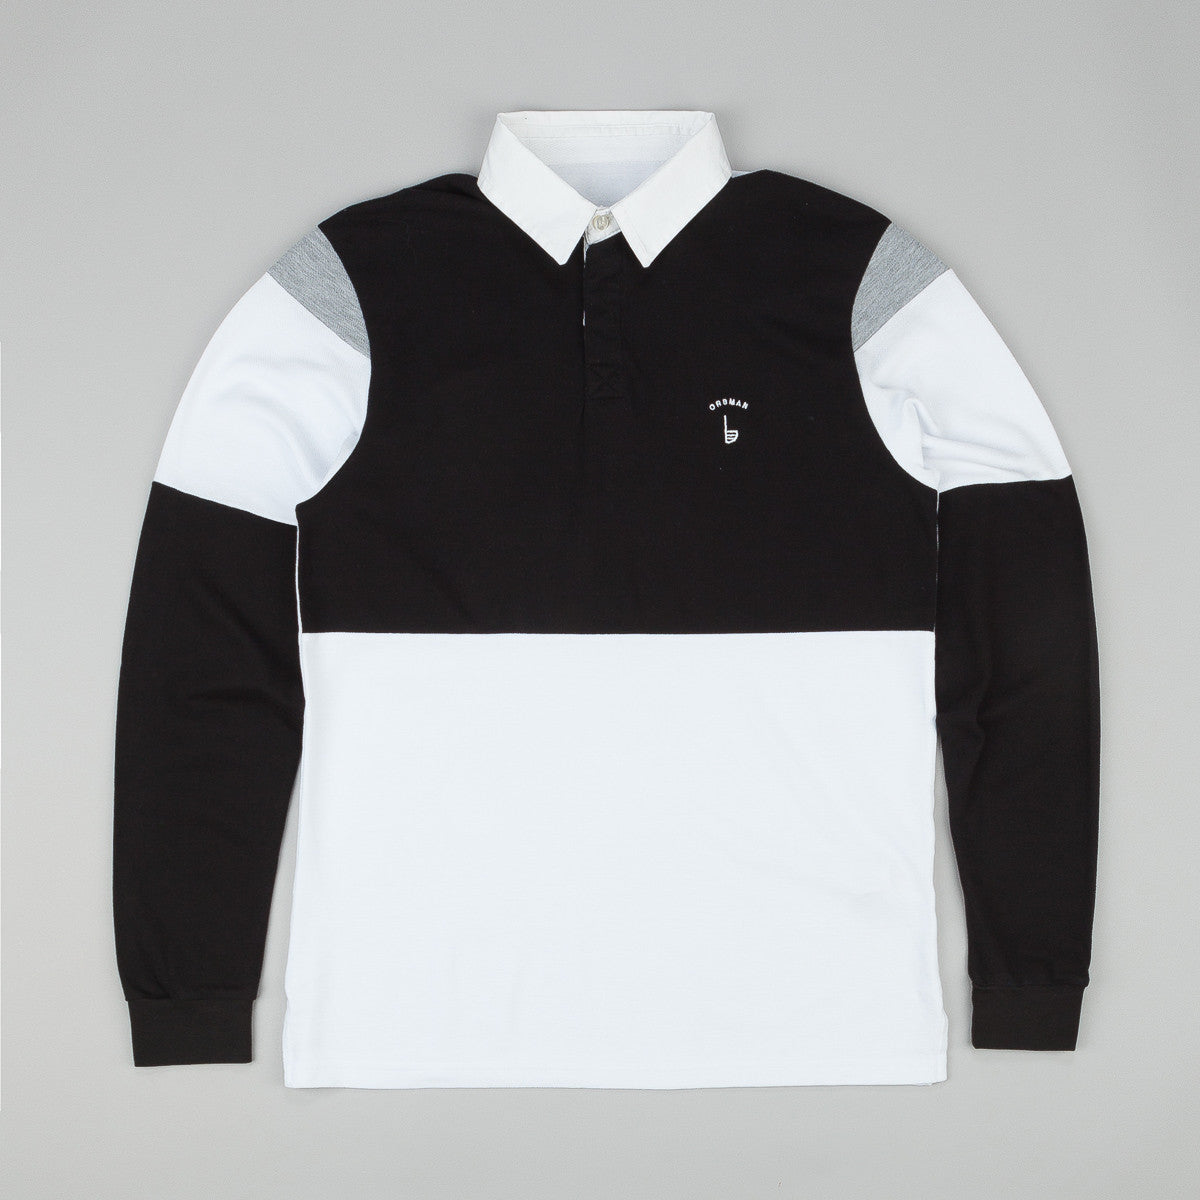 Orsman L/S Polo Shirt - Black / White / Grey